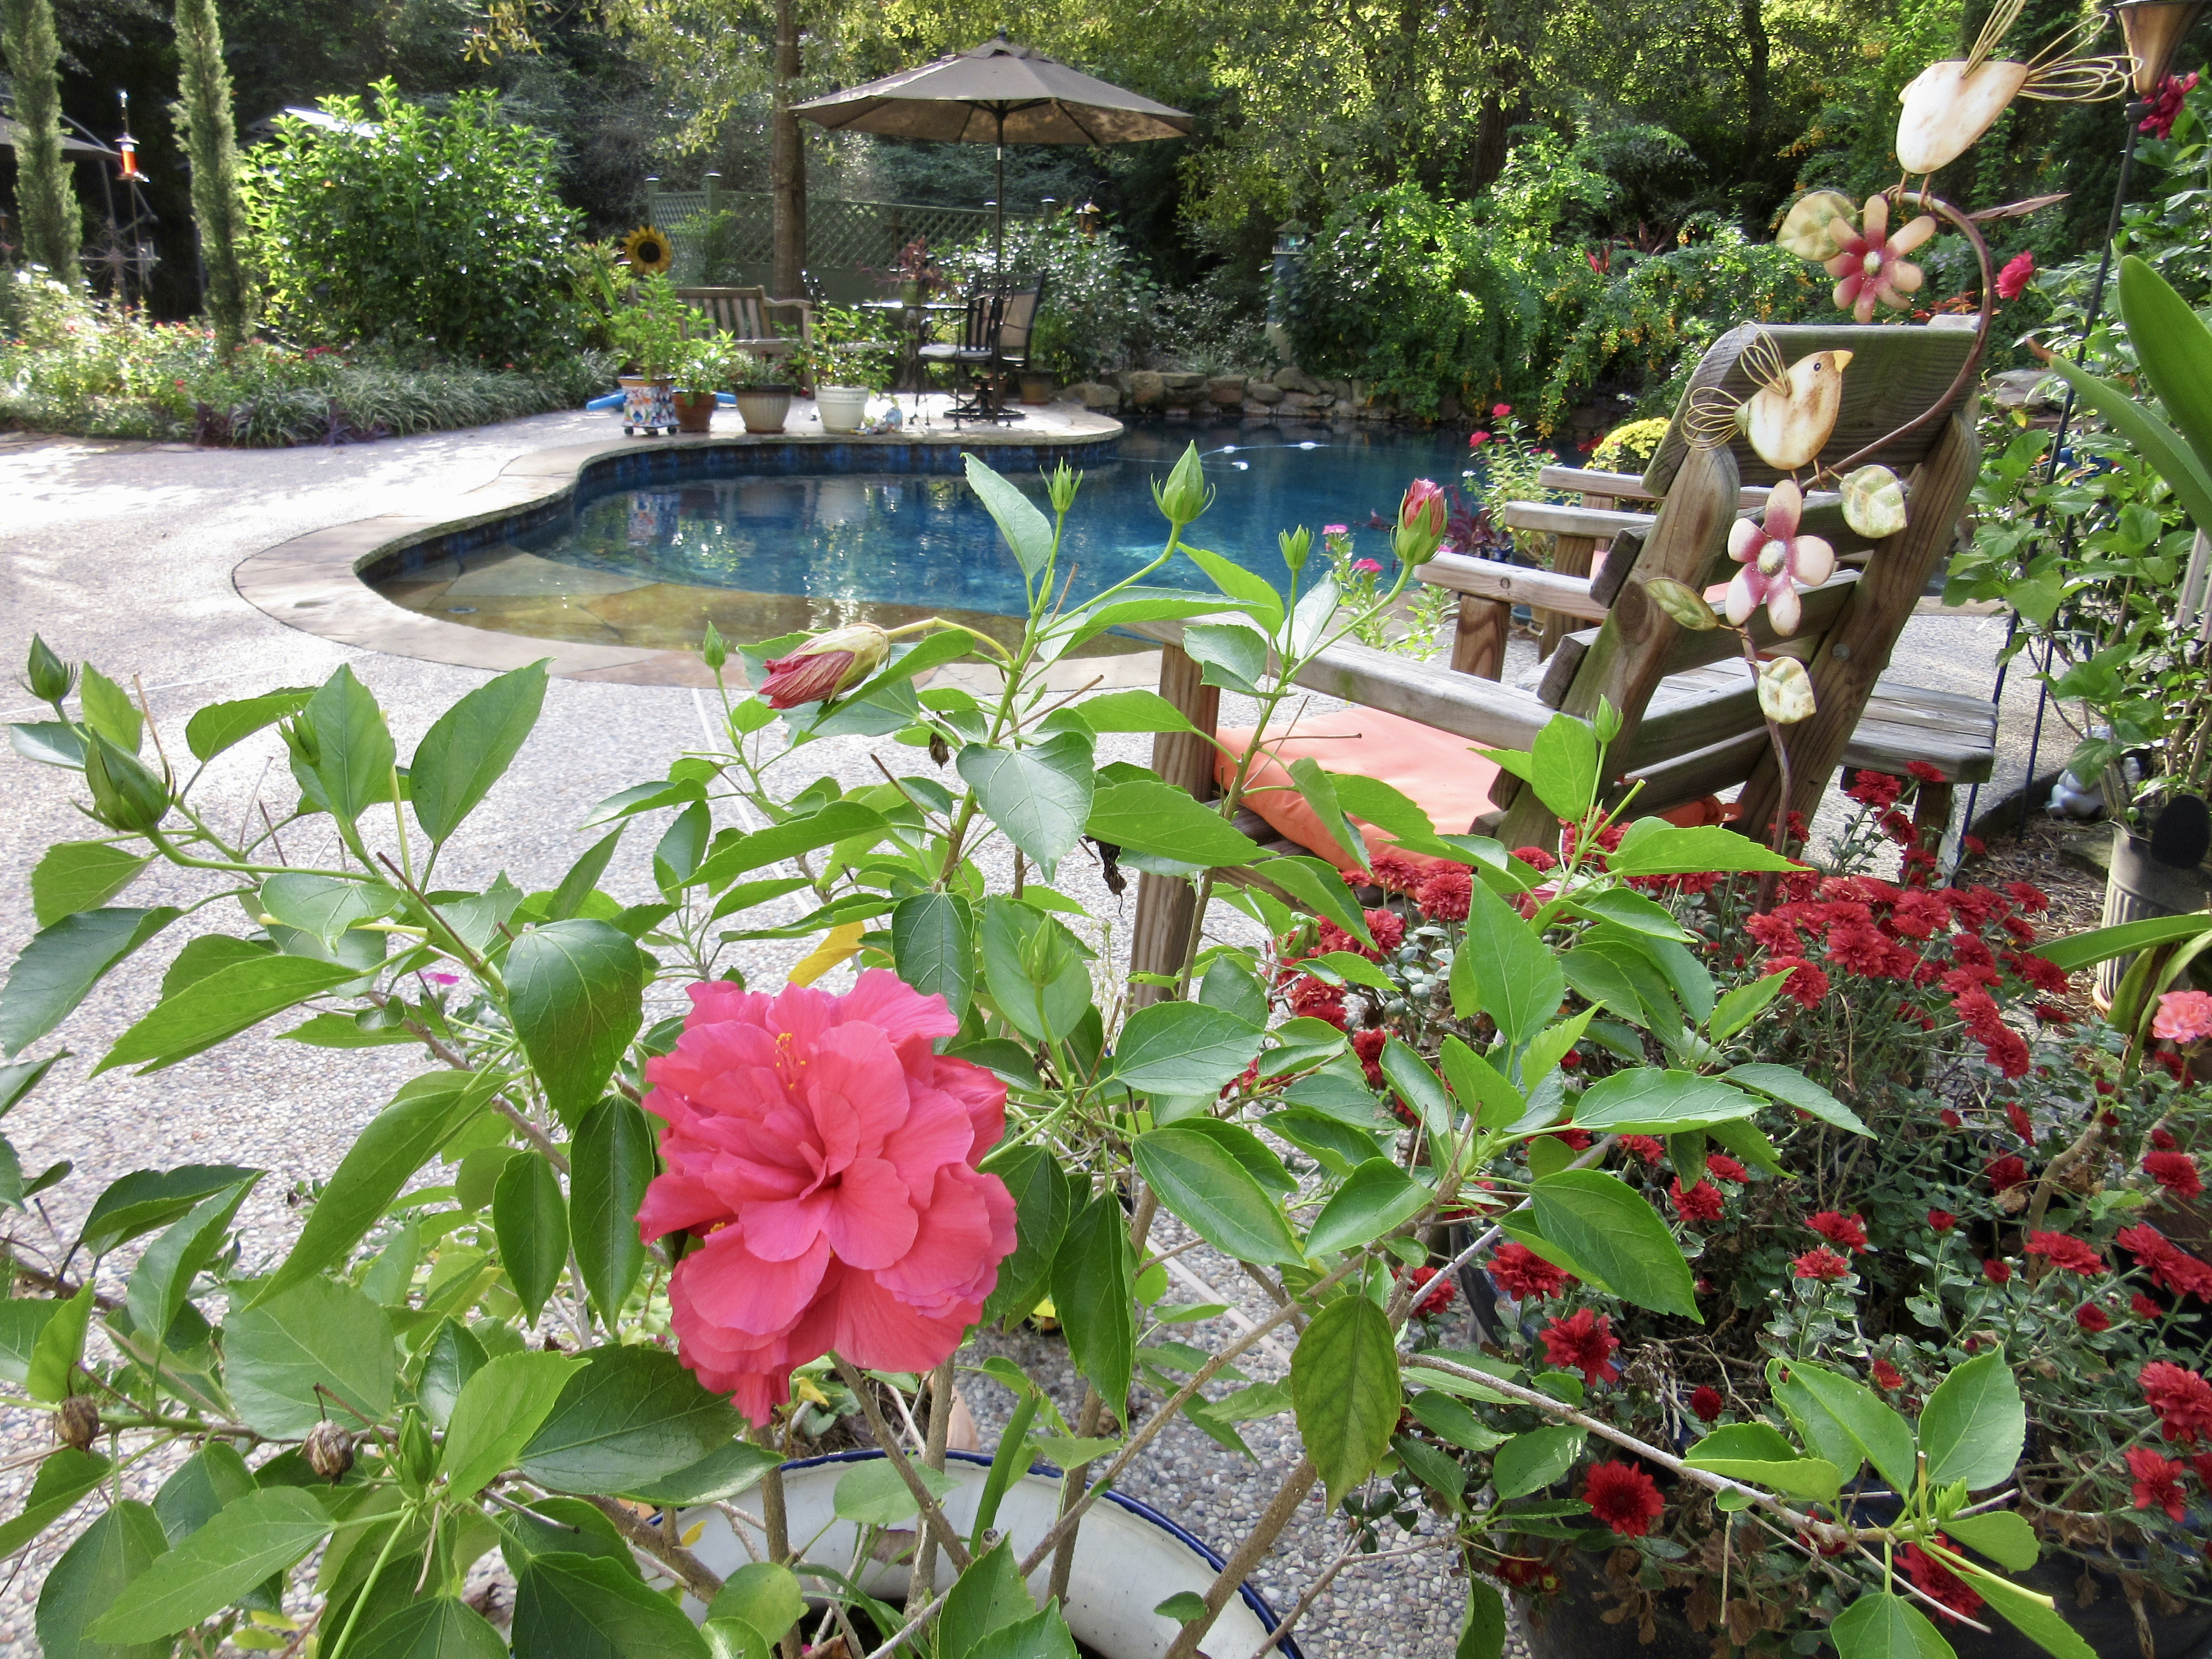 Haiku for Autumn in Southeast Texas: October's Party